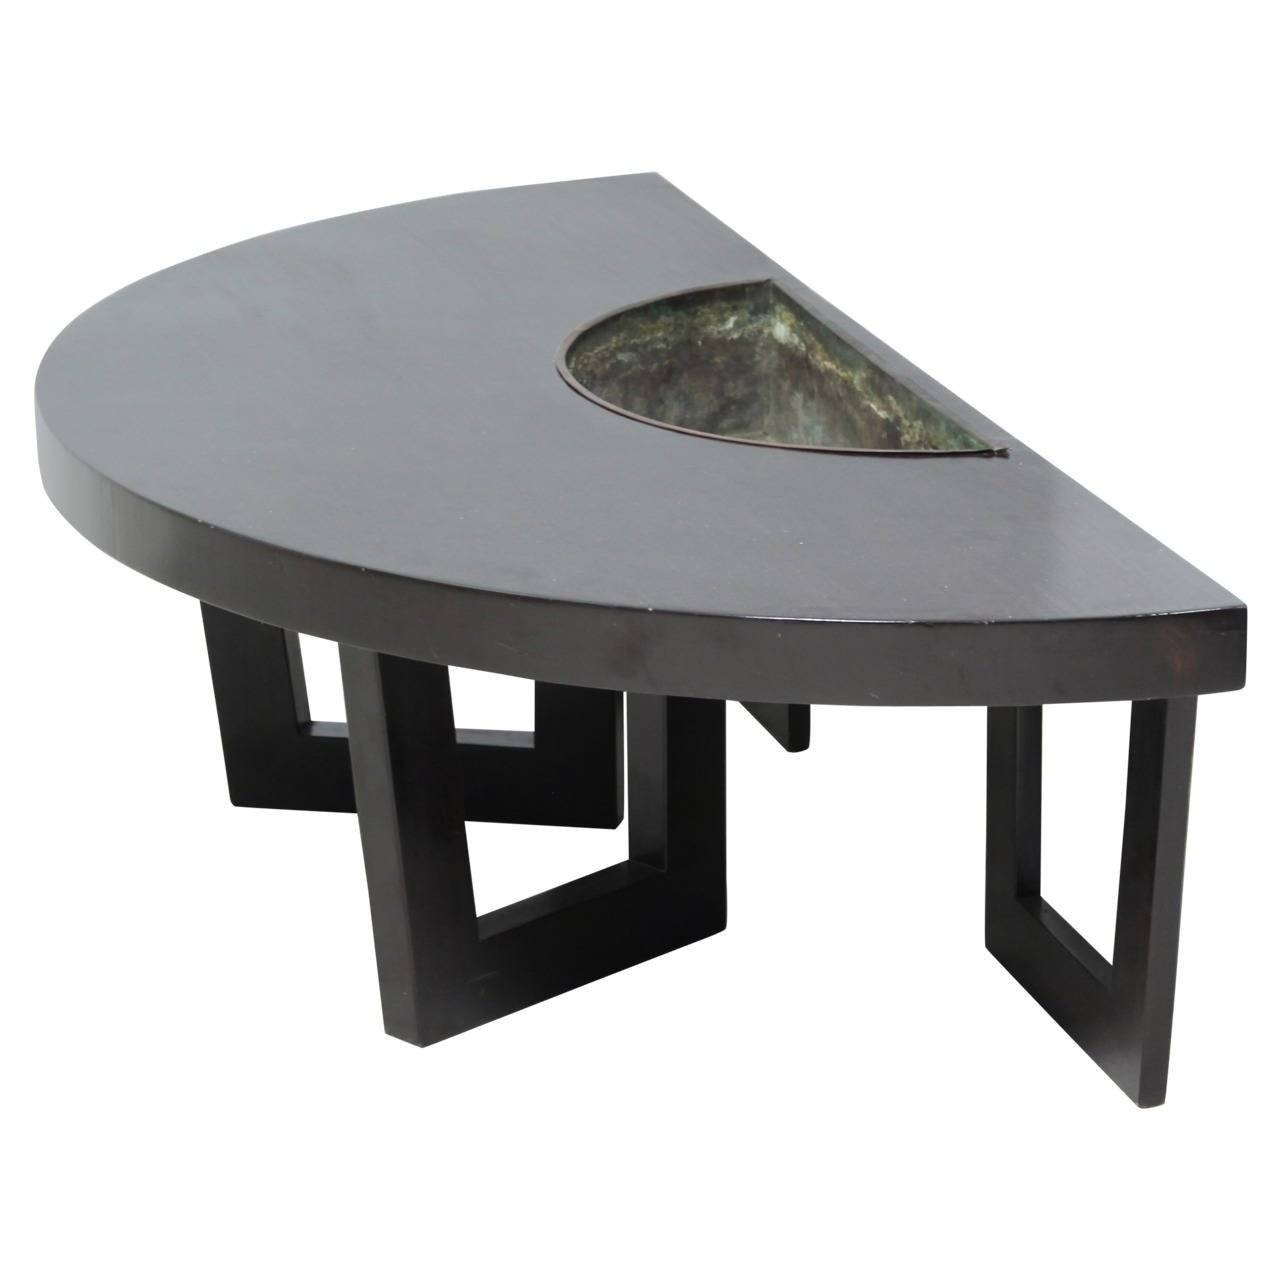 Harvey Probber Semi Circle Coffee Table With Inserted Copper pertaining to Circle Coffee Tables (Image 19 of 30)